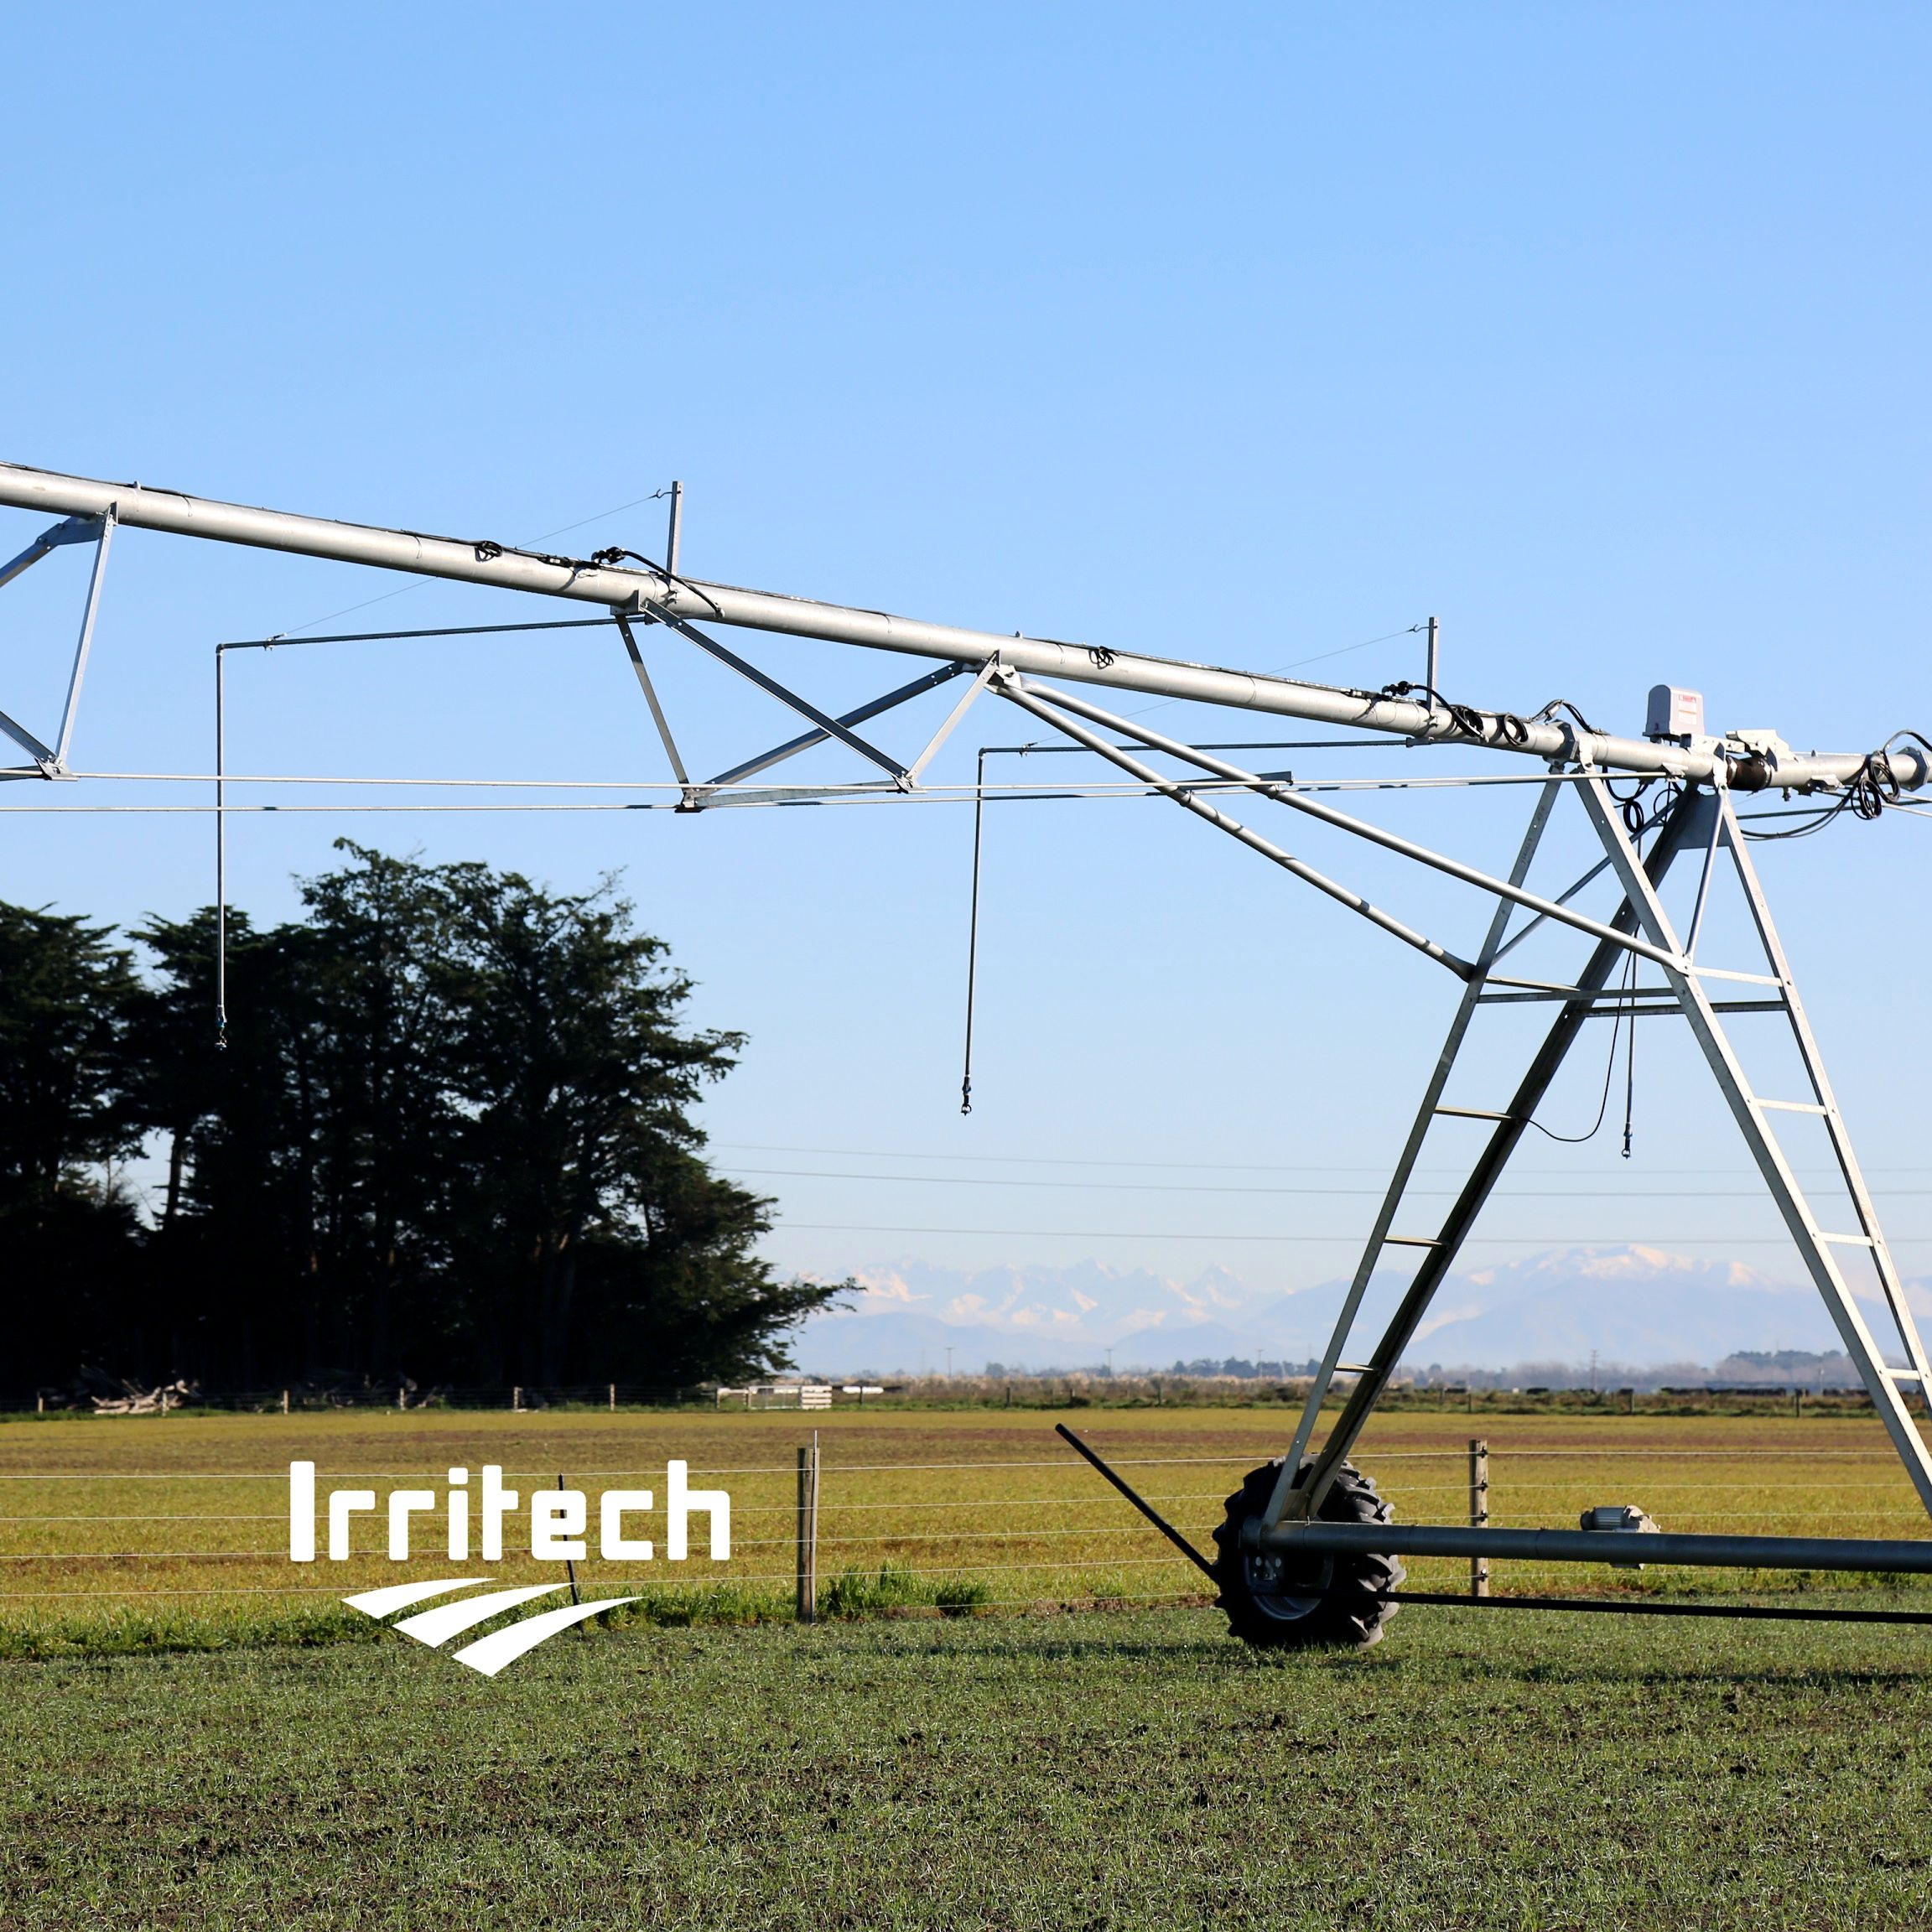 IRRITECH Automatic Fertilizers Agricultural Machinery Center Pivot Irrigation System in Egypt